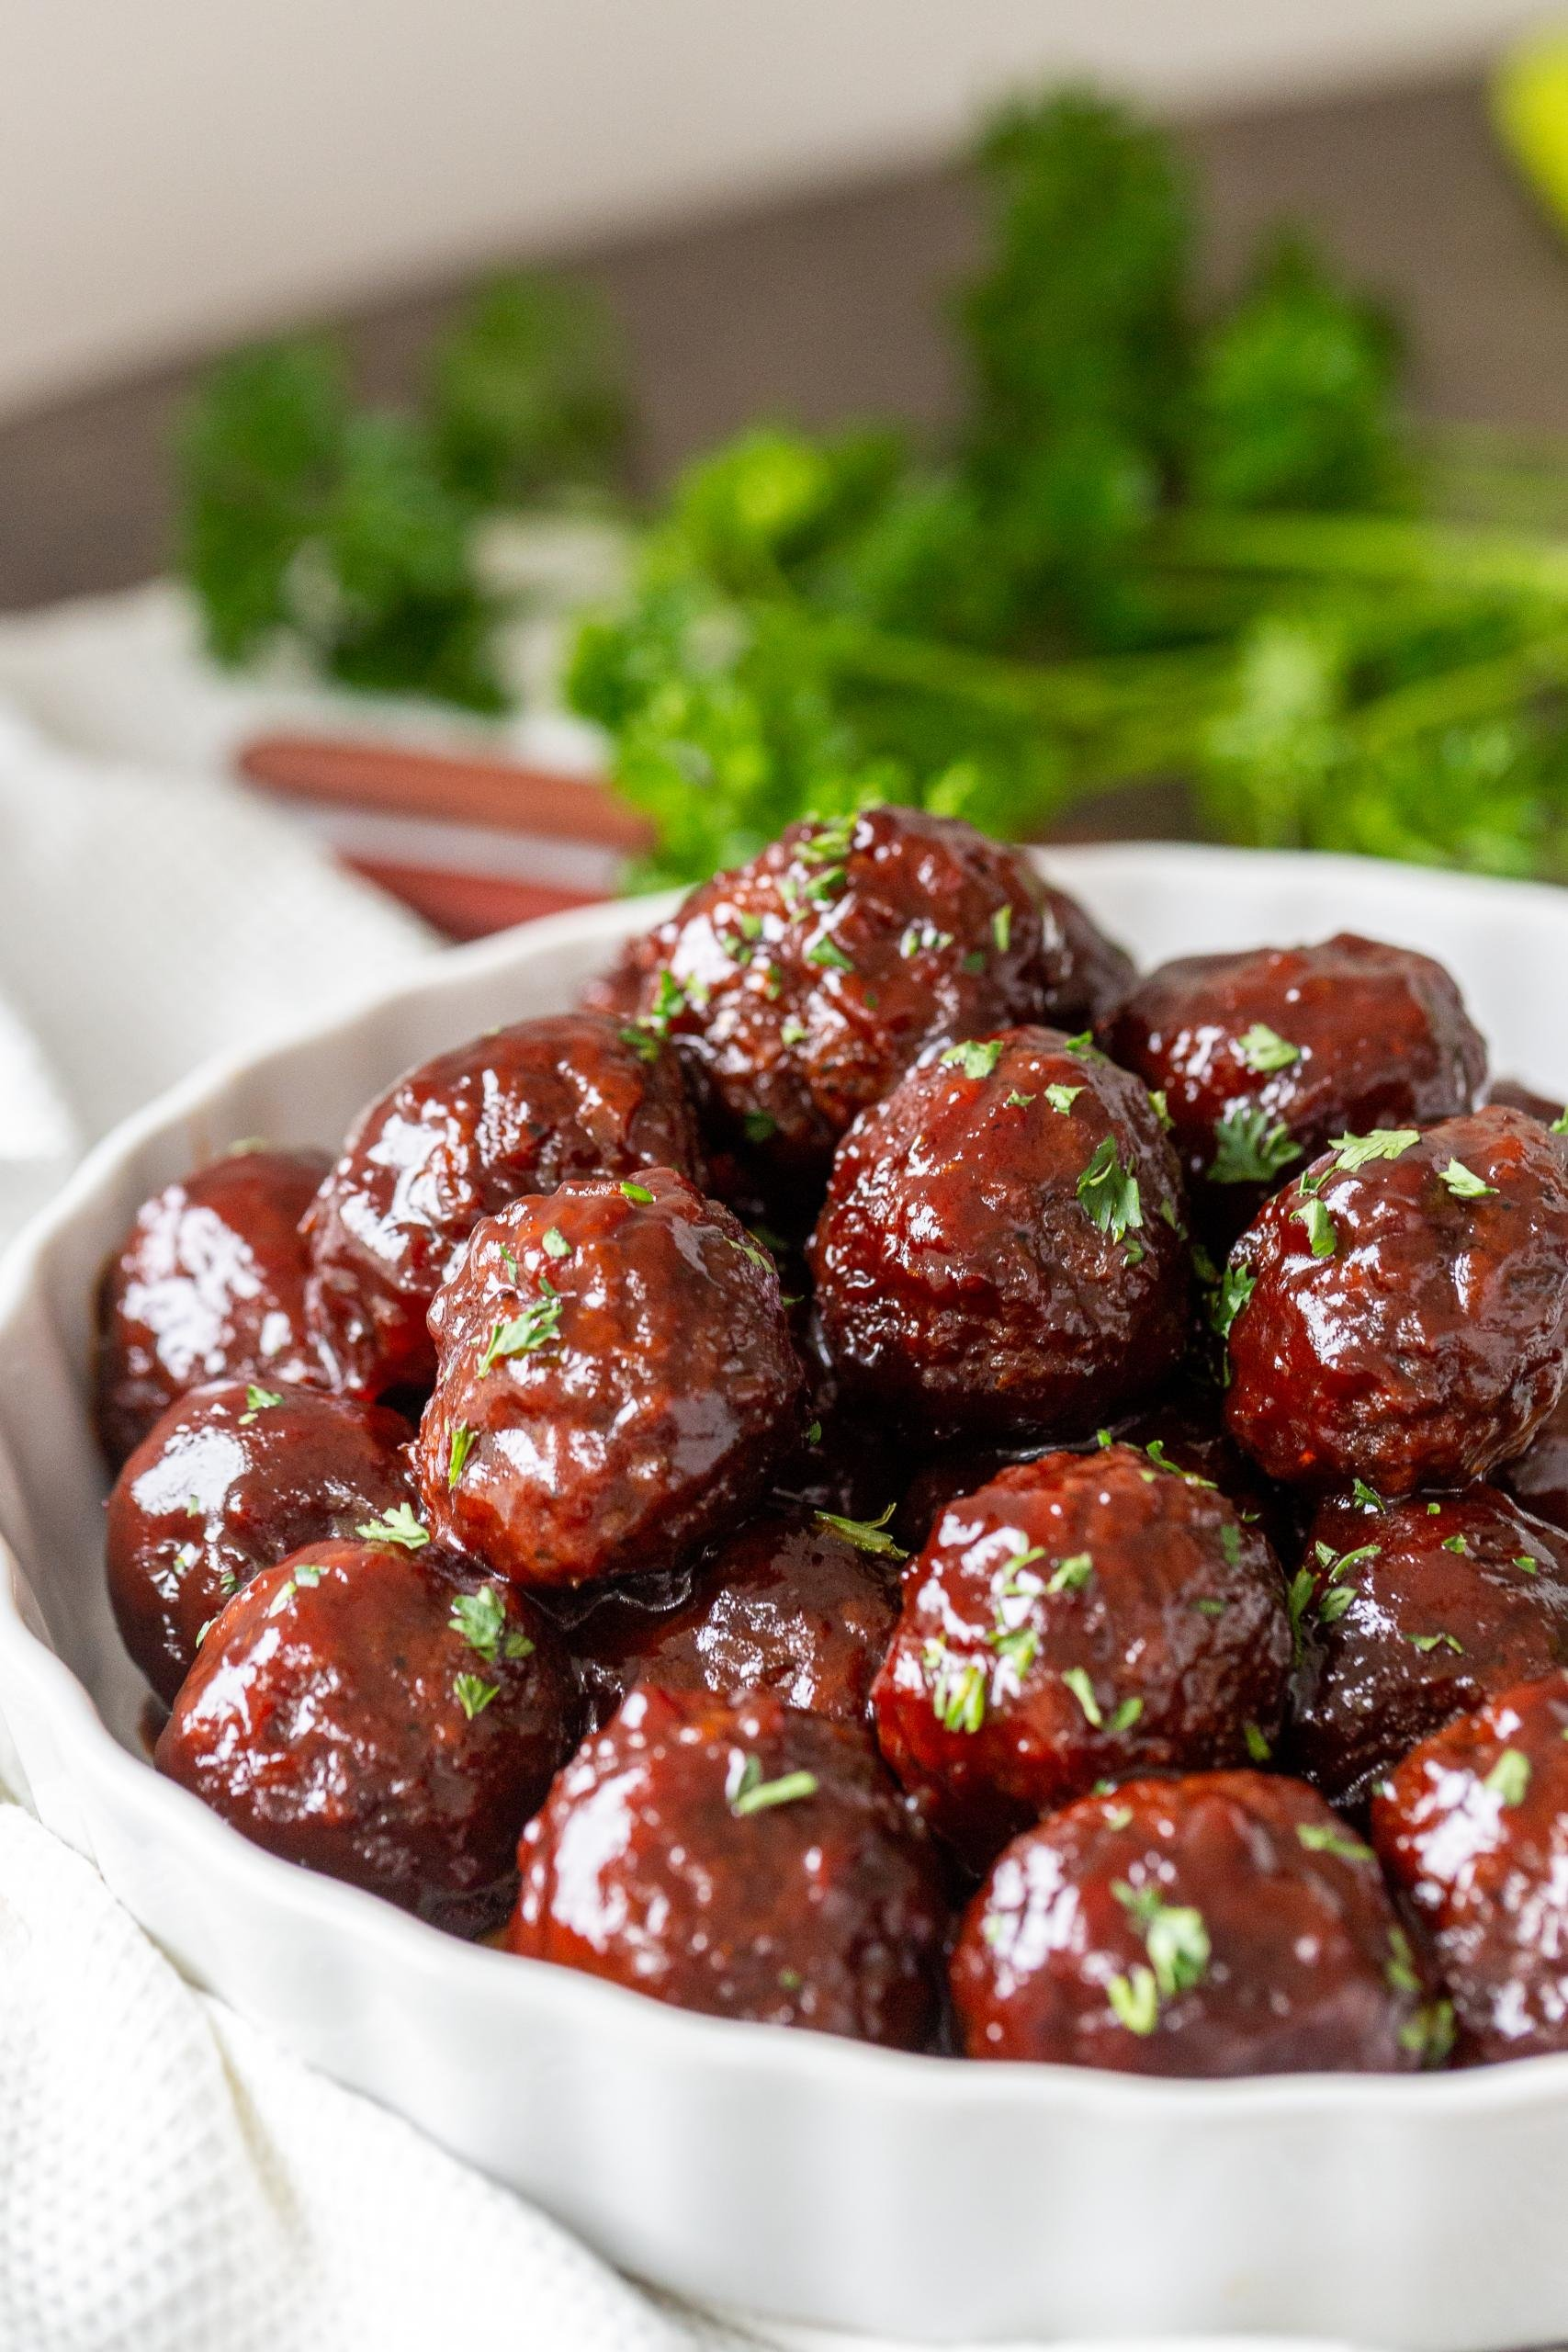 Jelly Meatballs in a bowl